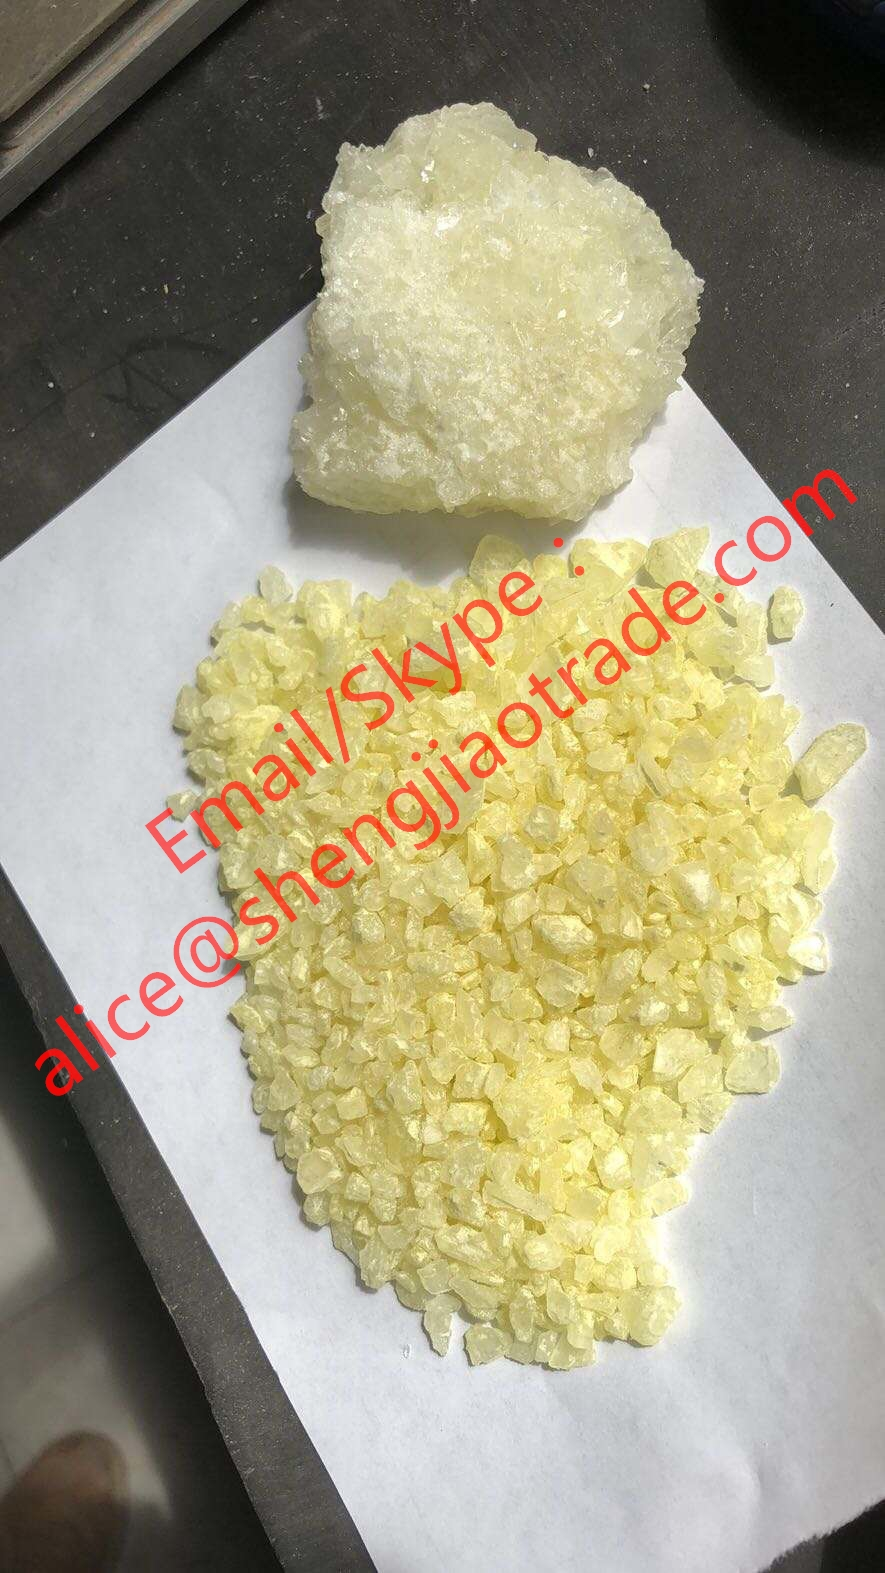 hot sell 4-cdc 4cdc 4-cec crystals in stock fast safe shipping